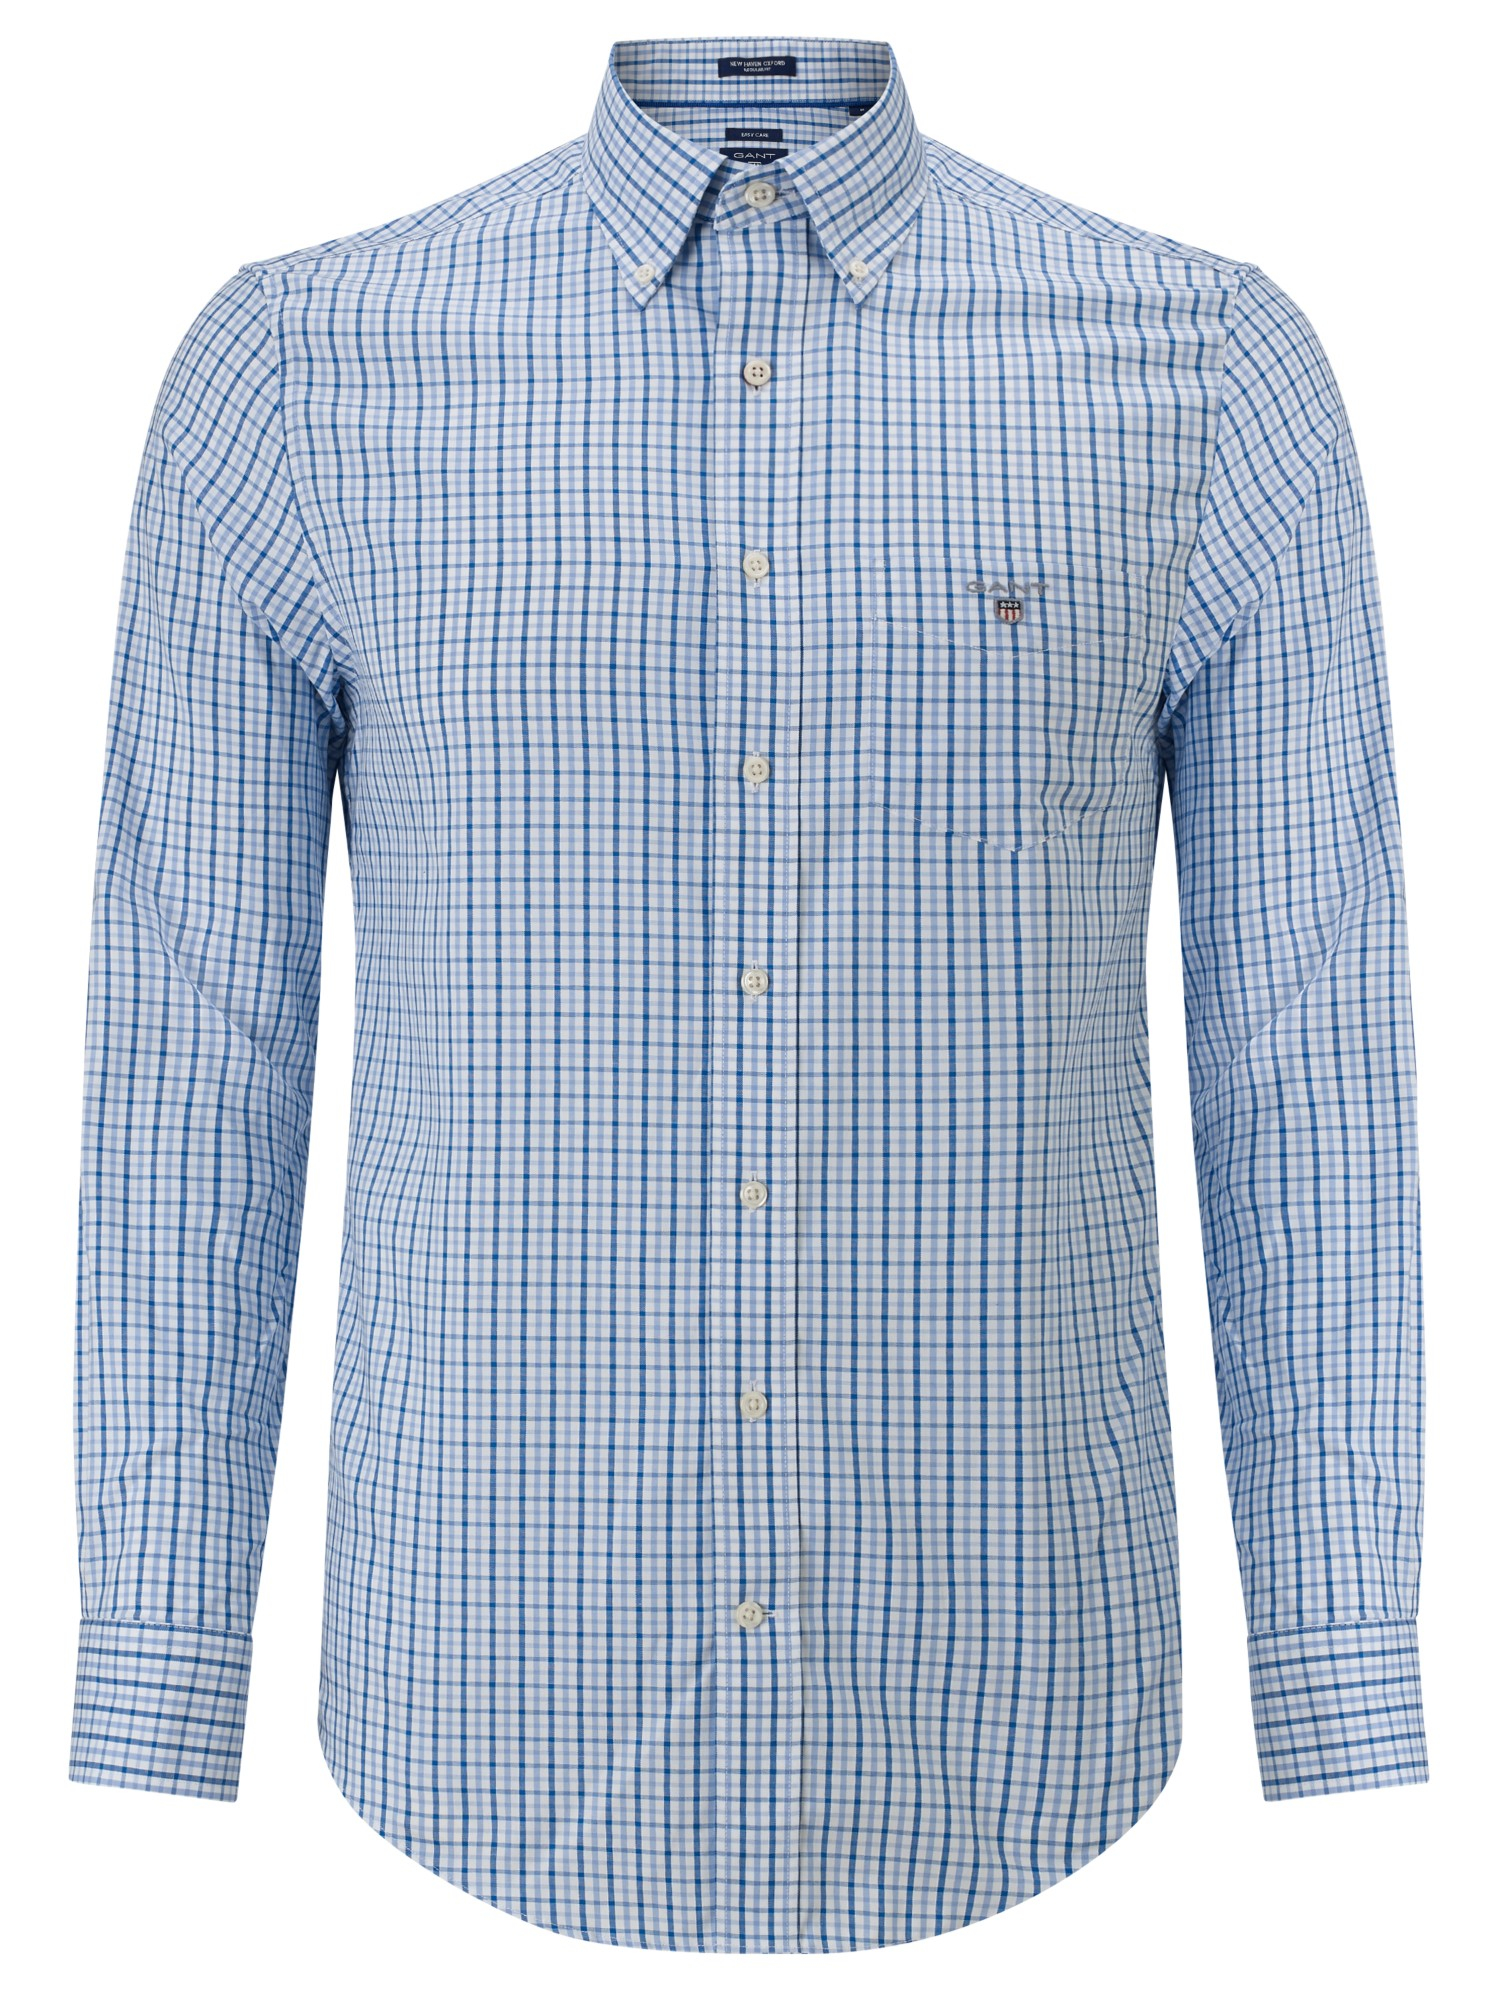 Gant Button Down Gingham Shirt In Blue For Men Lyst